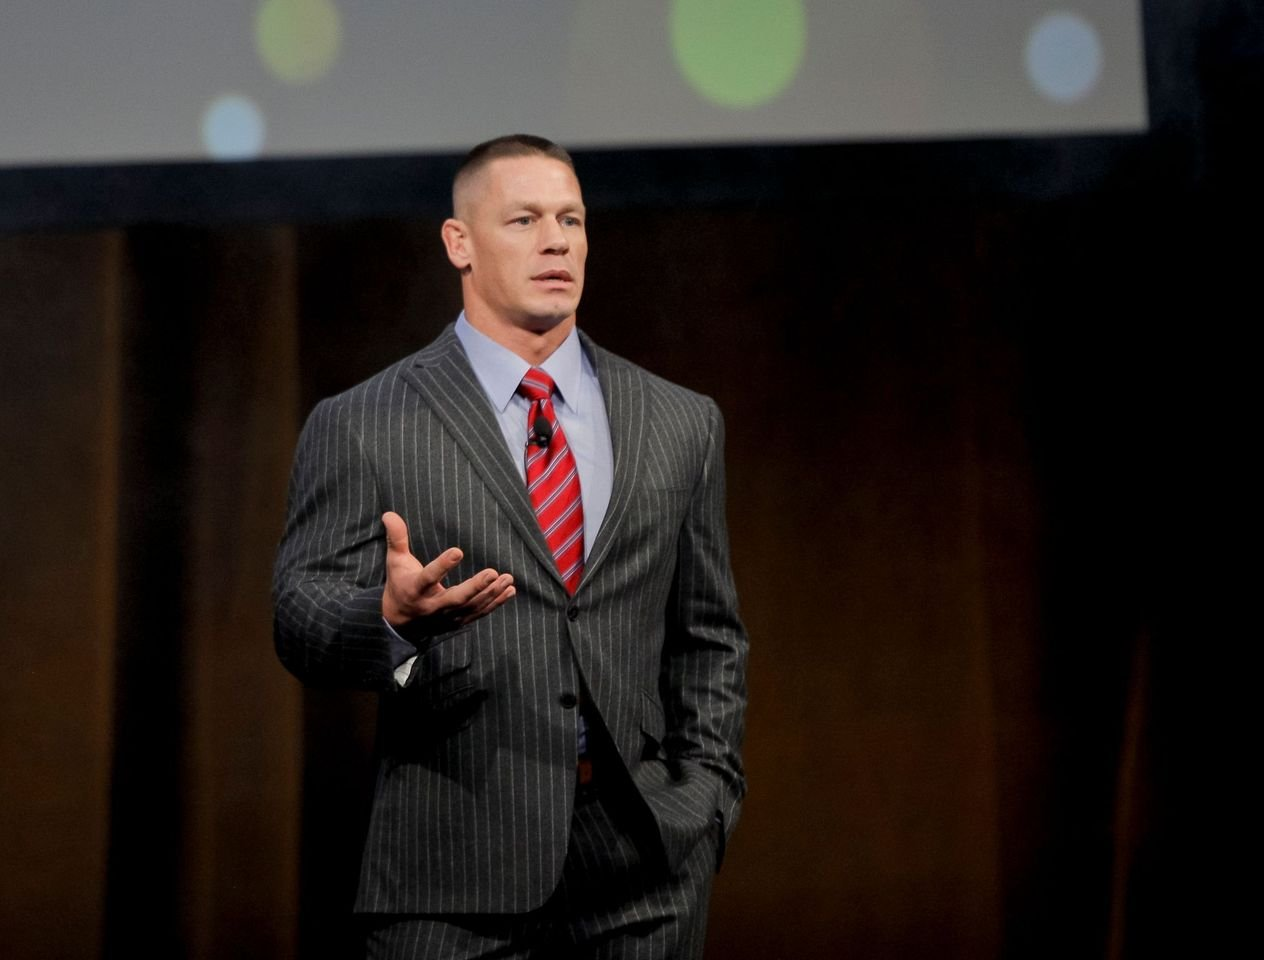 John Cena at the final day luncheon and special program 'Amazon Studios: Delivering the best in independent cinema' on March 30, 2017 in Las Vegas, Nevada | Photo: Getty Images